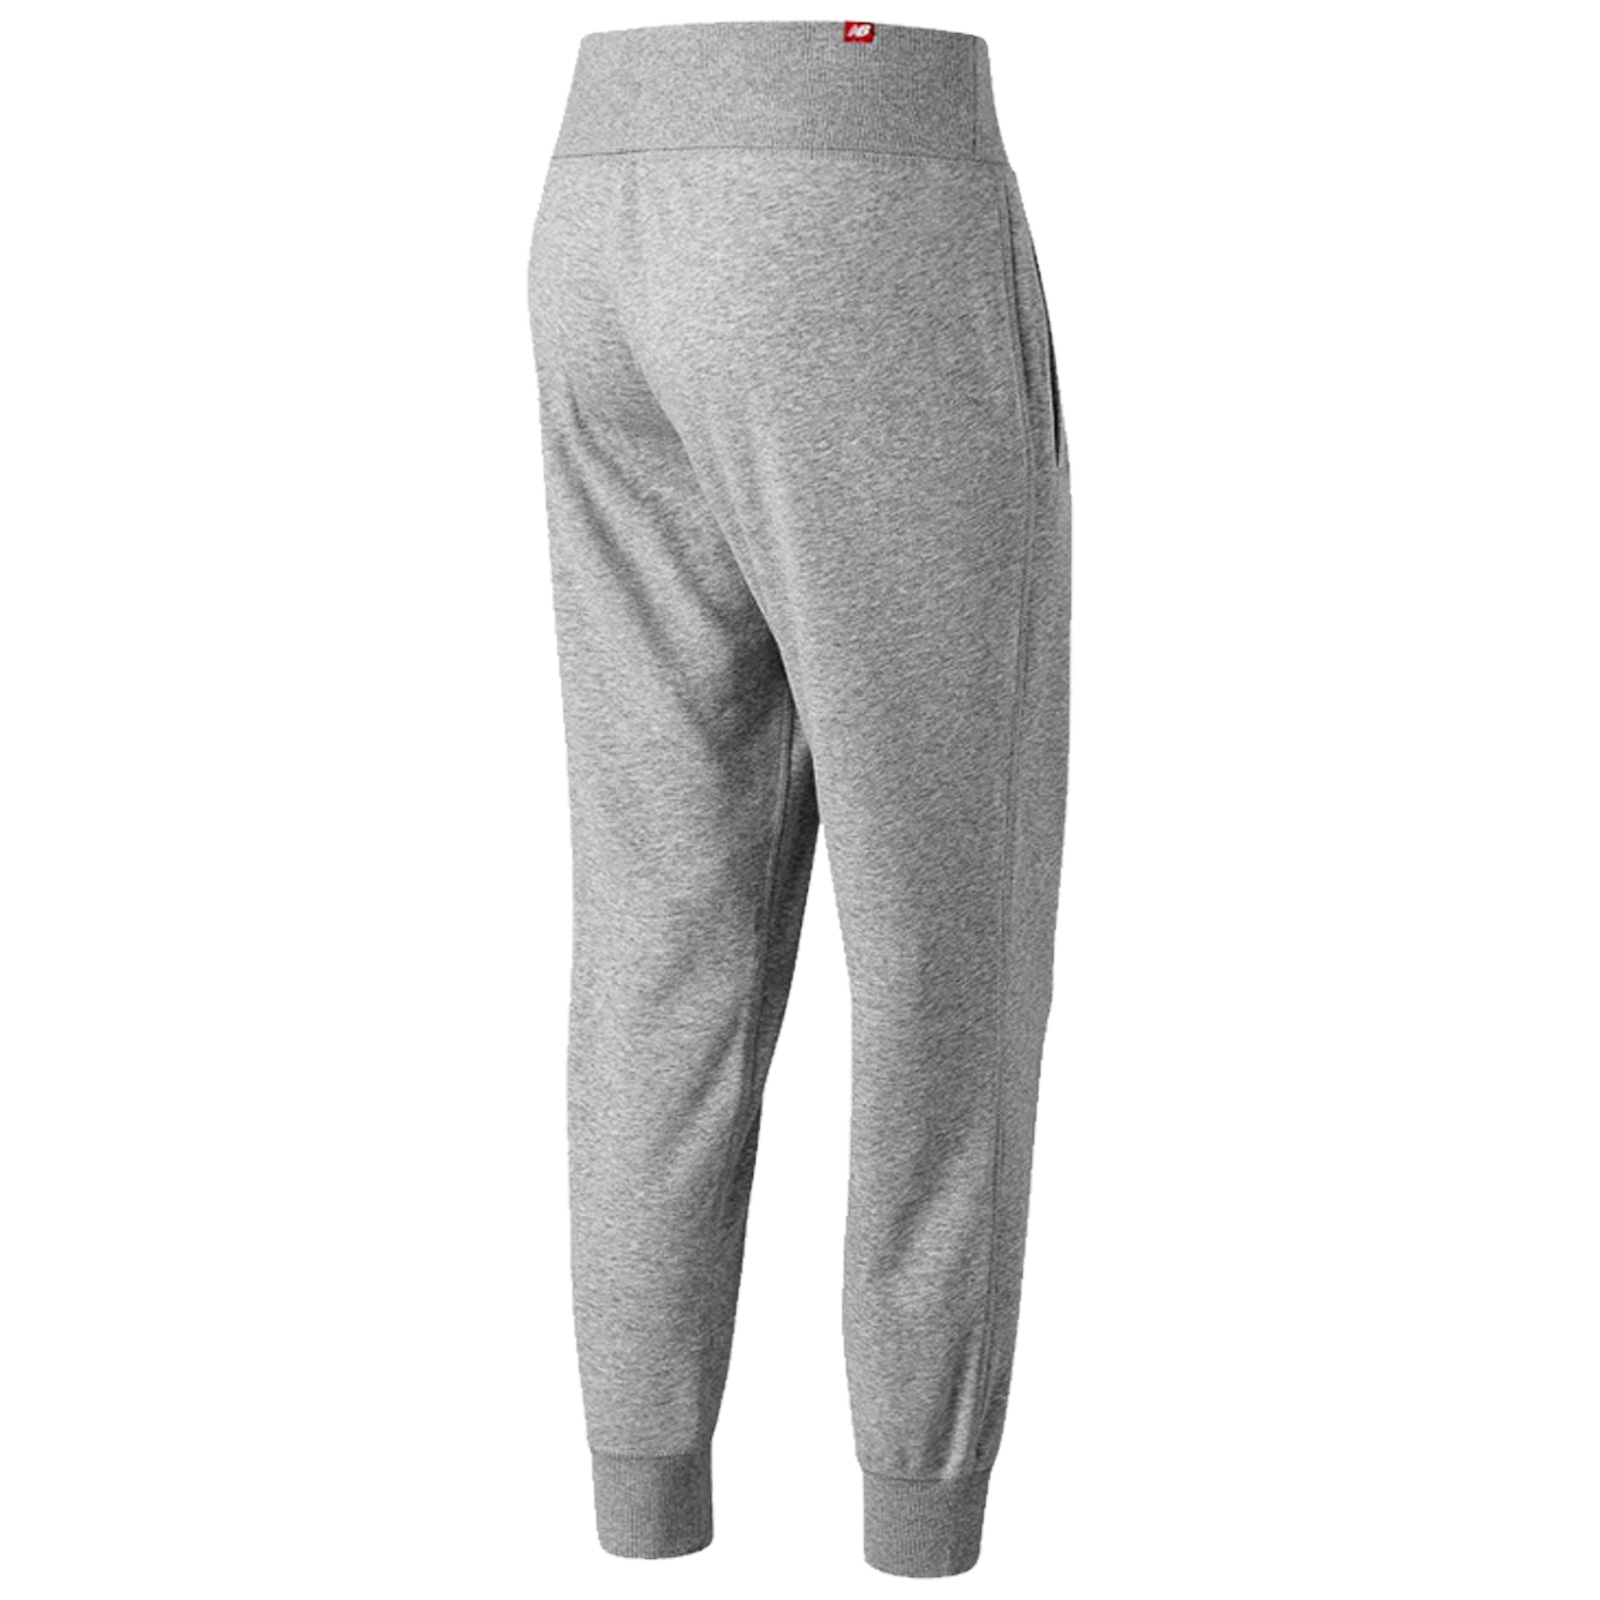 9a01b1e9196 Details about 2019 New Balance Ladies Essentials Sweat Pants Womens  Tracksuit Bottoms Joggers